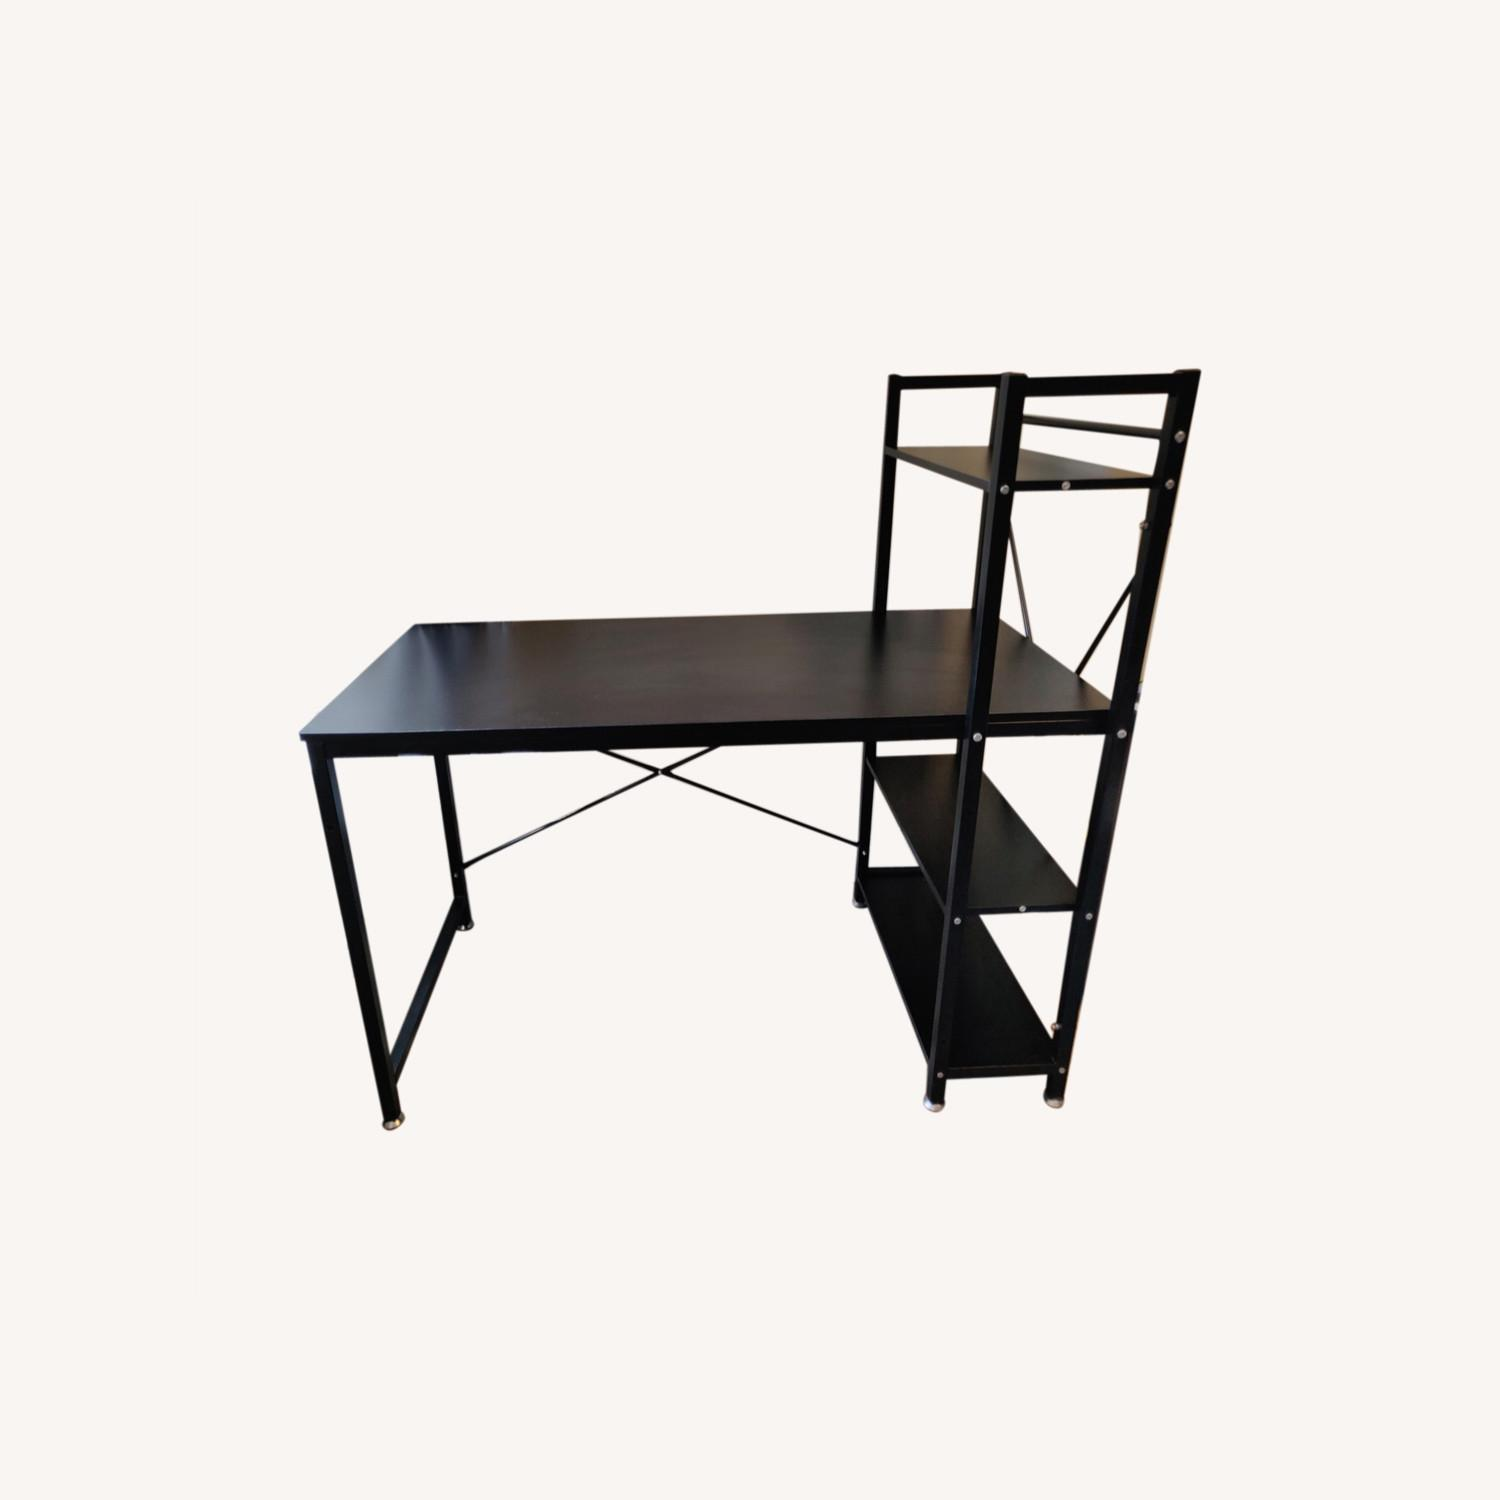 Industrial-style Desk with Shelves - image-0